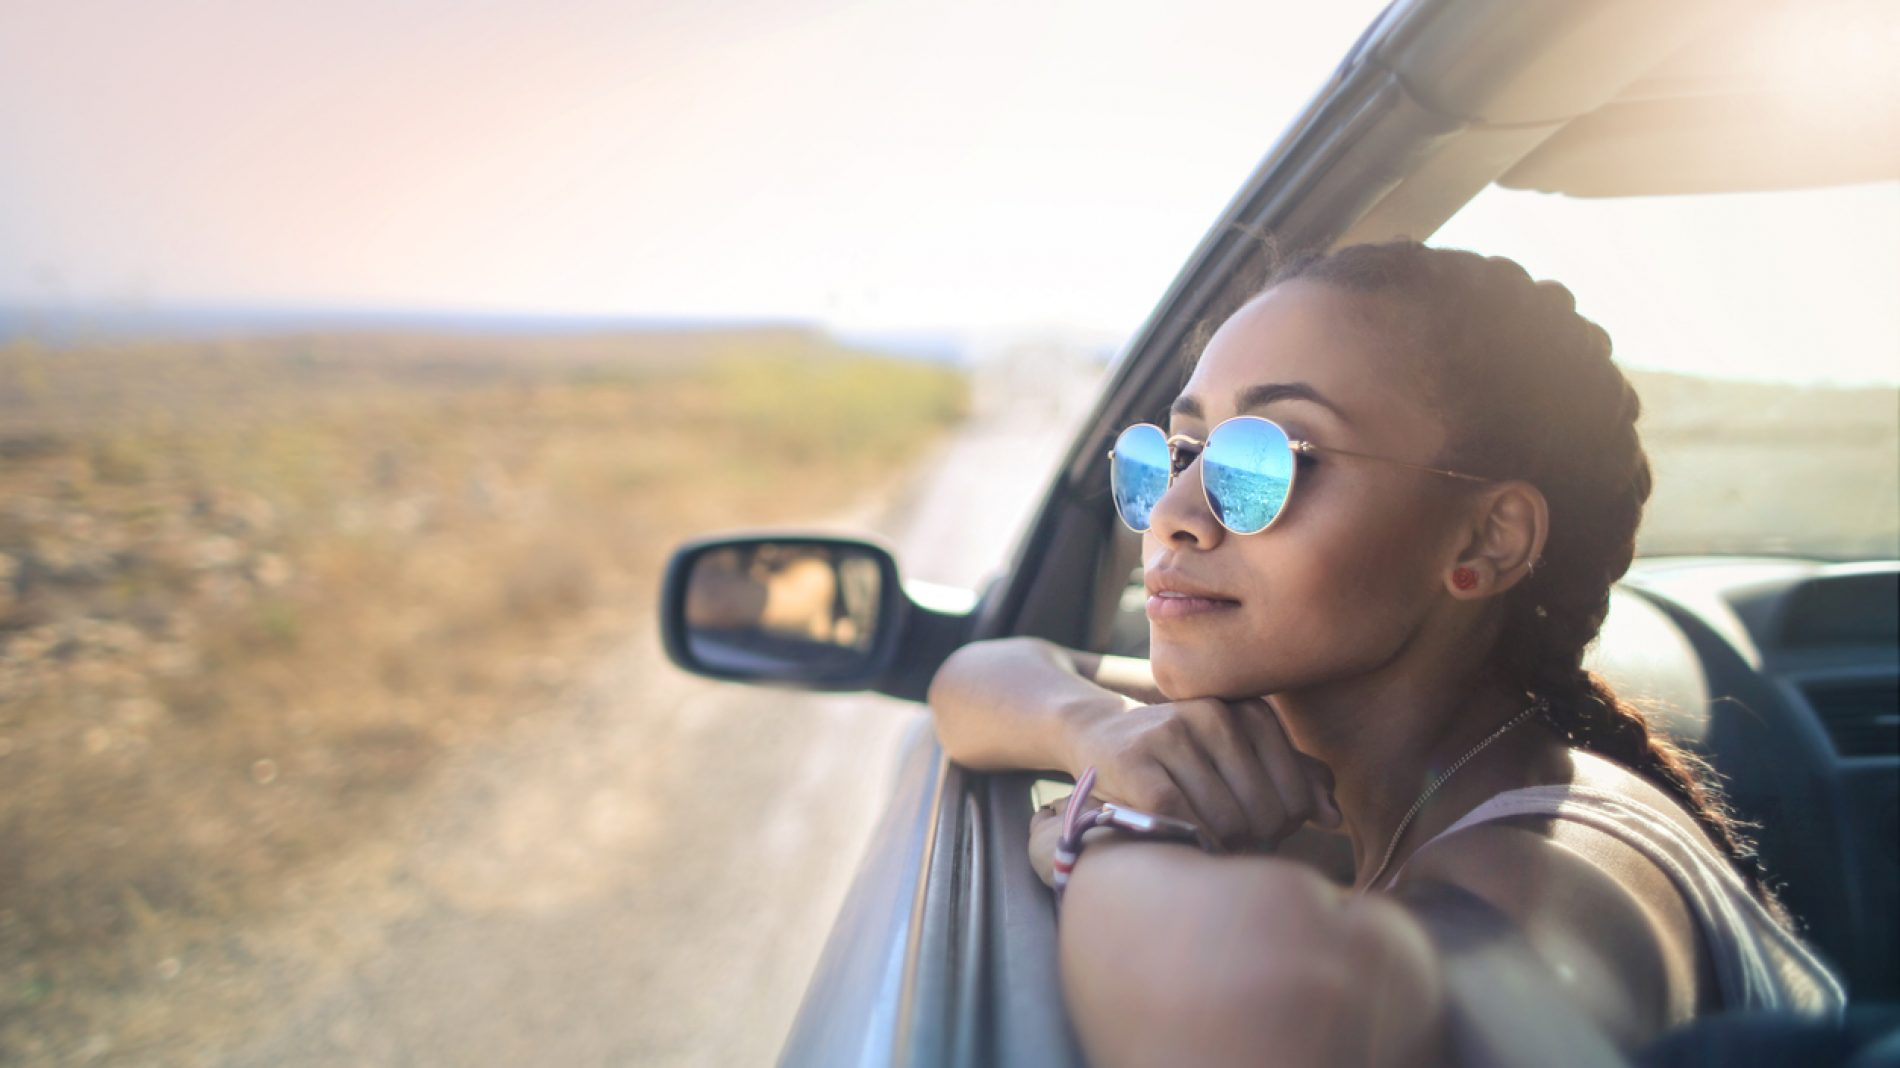 Trendy girl traveling by car